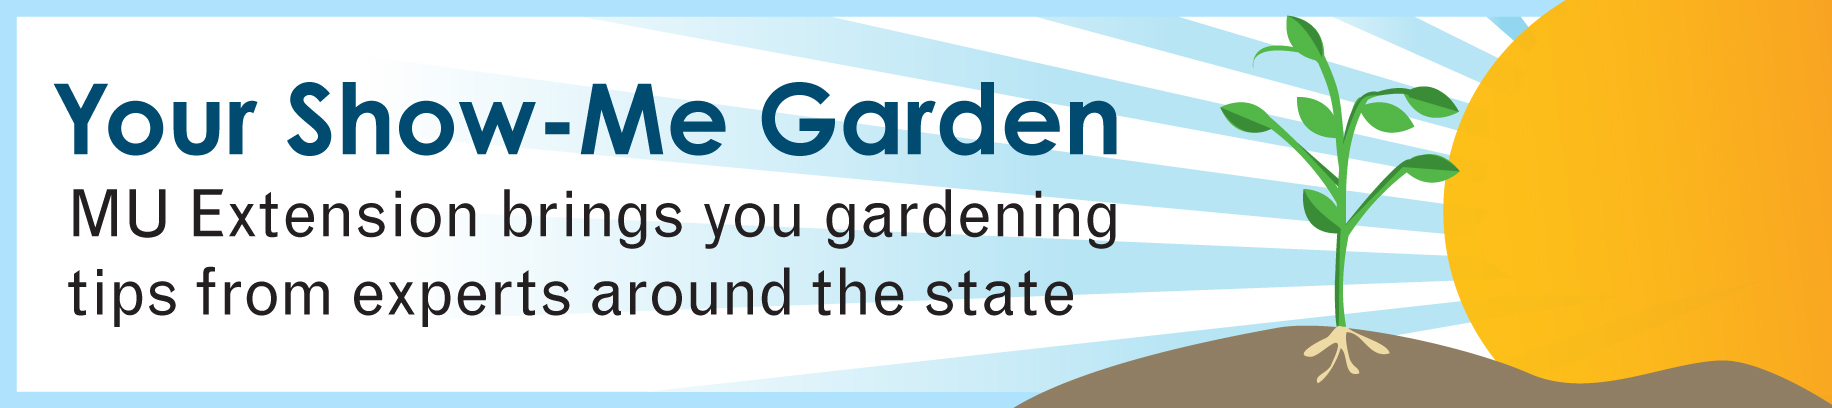 Your Show-Me Garden: MU Extension brings you gardening tips from experts around the state.